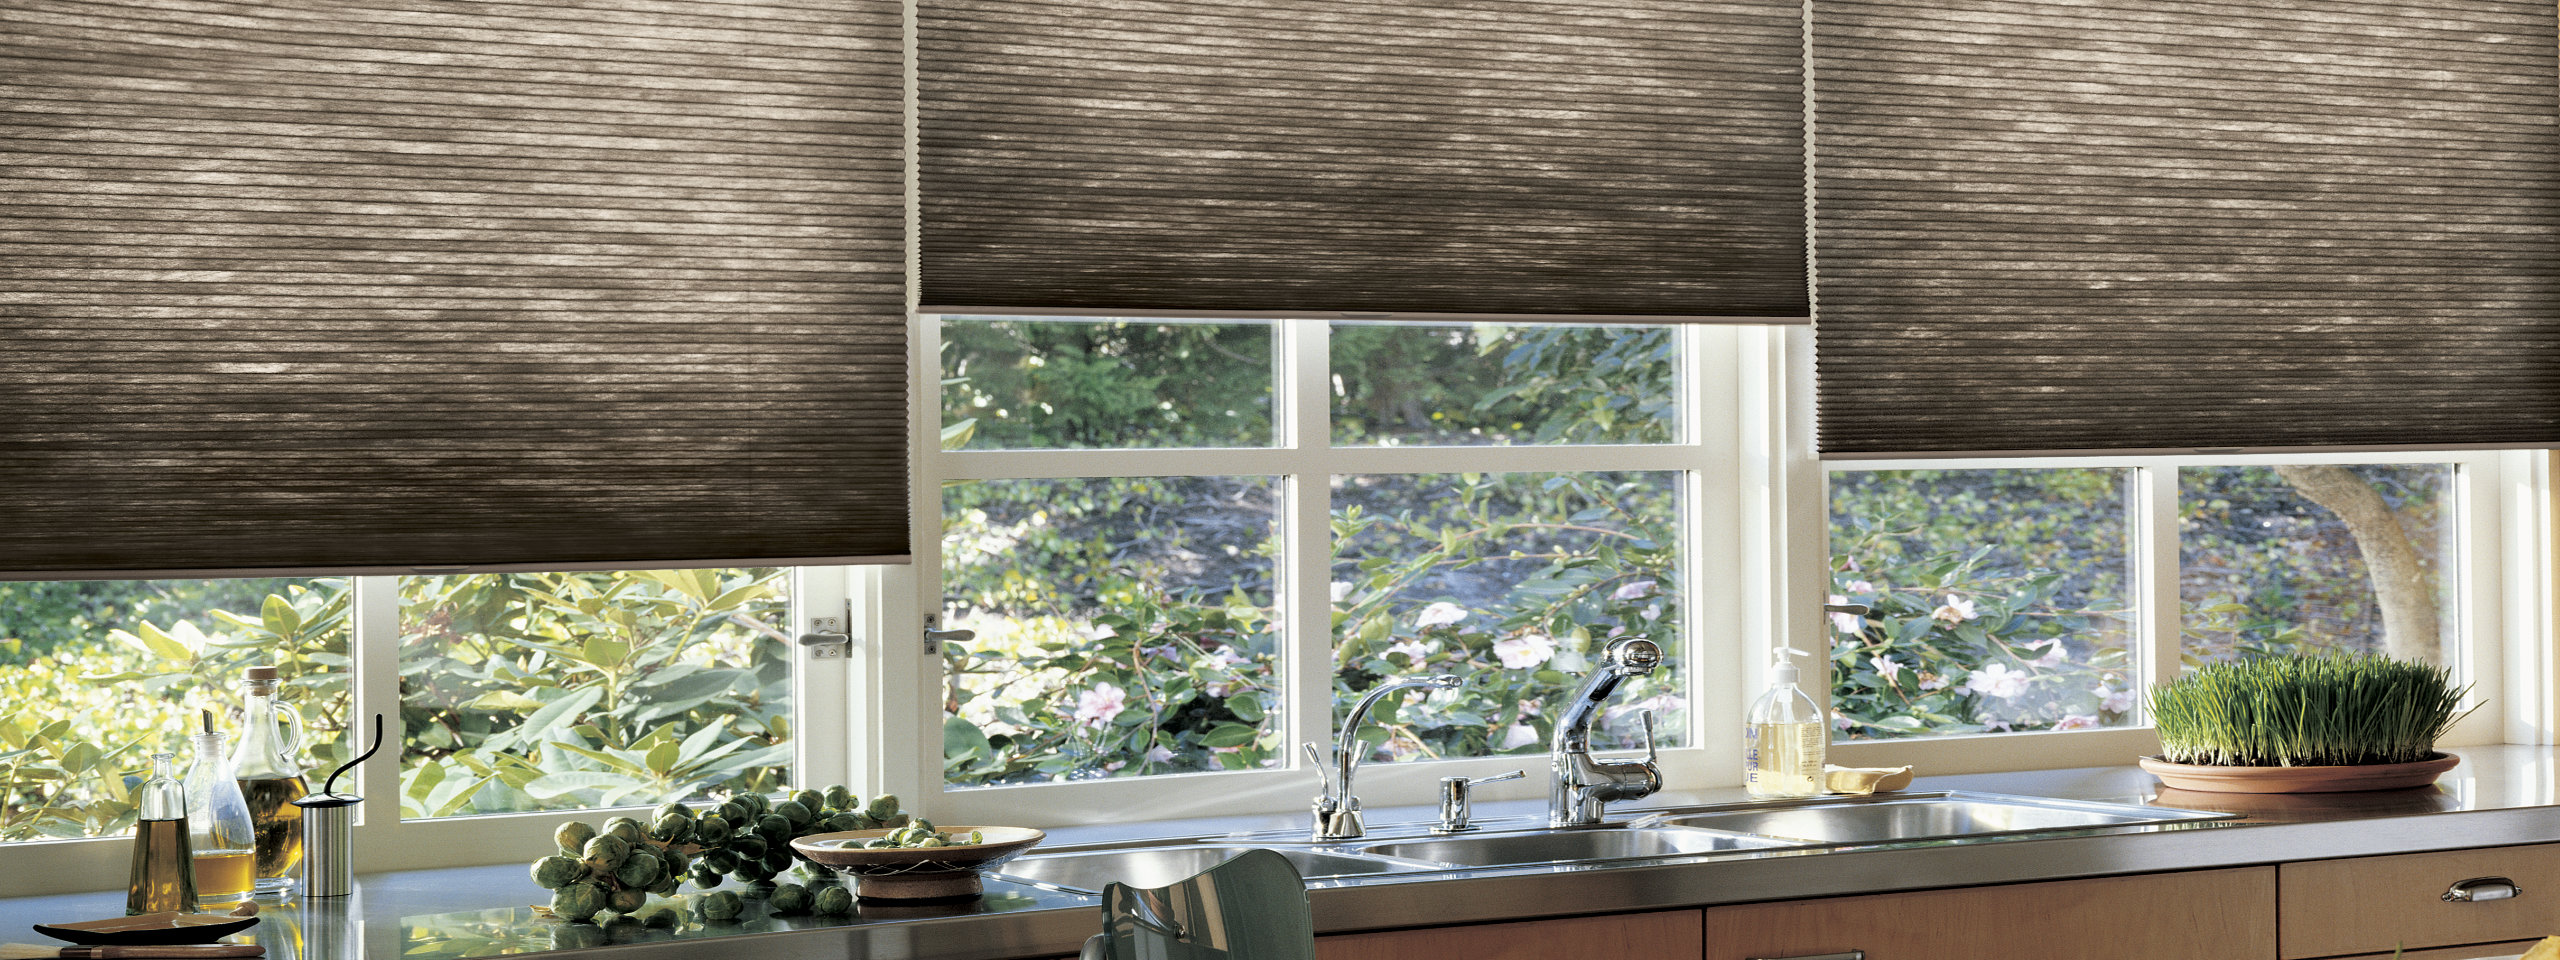 Hunter Douglas Cellular Shades in the Kitchen